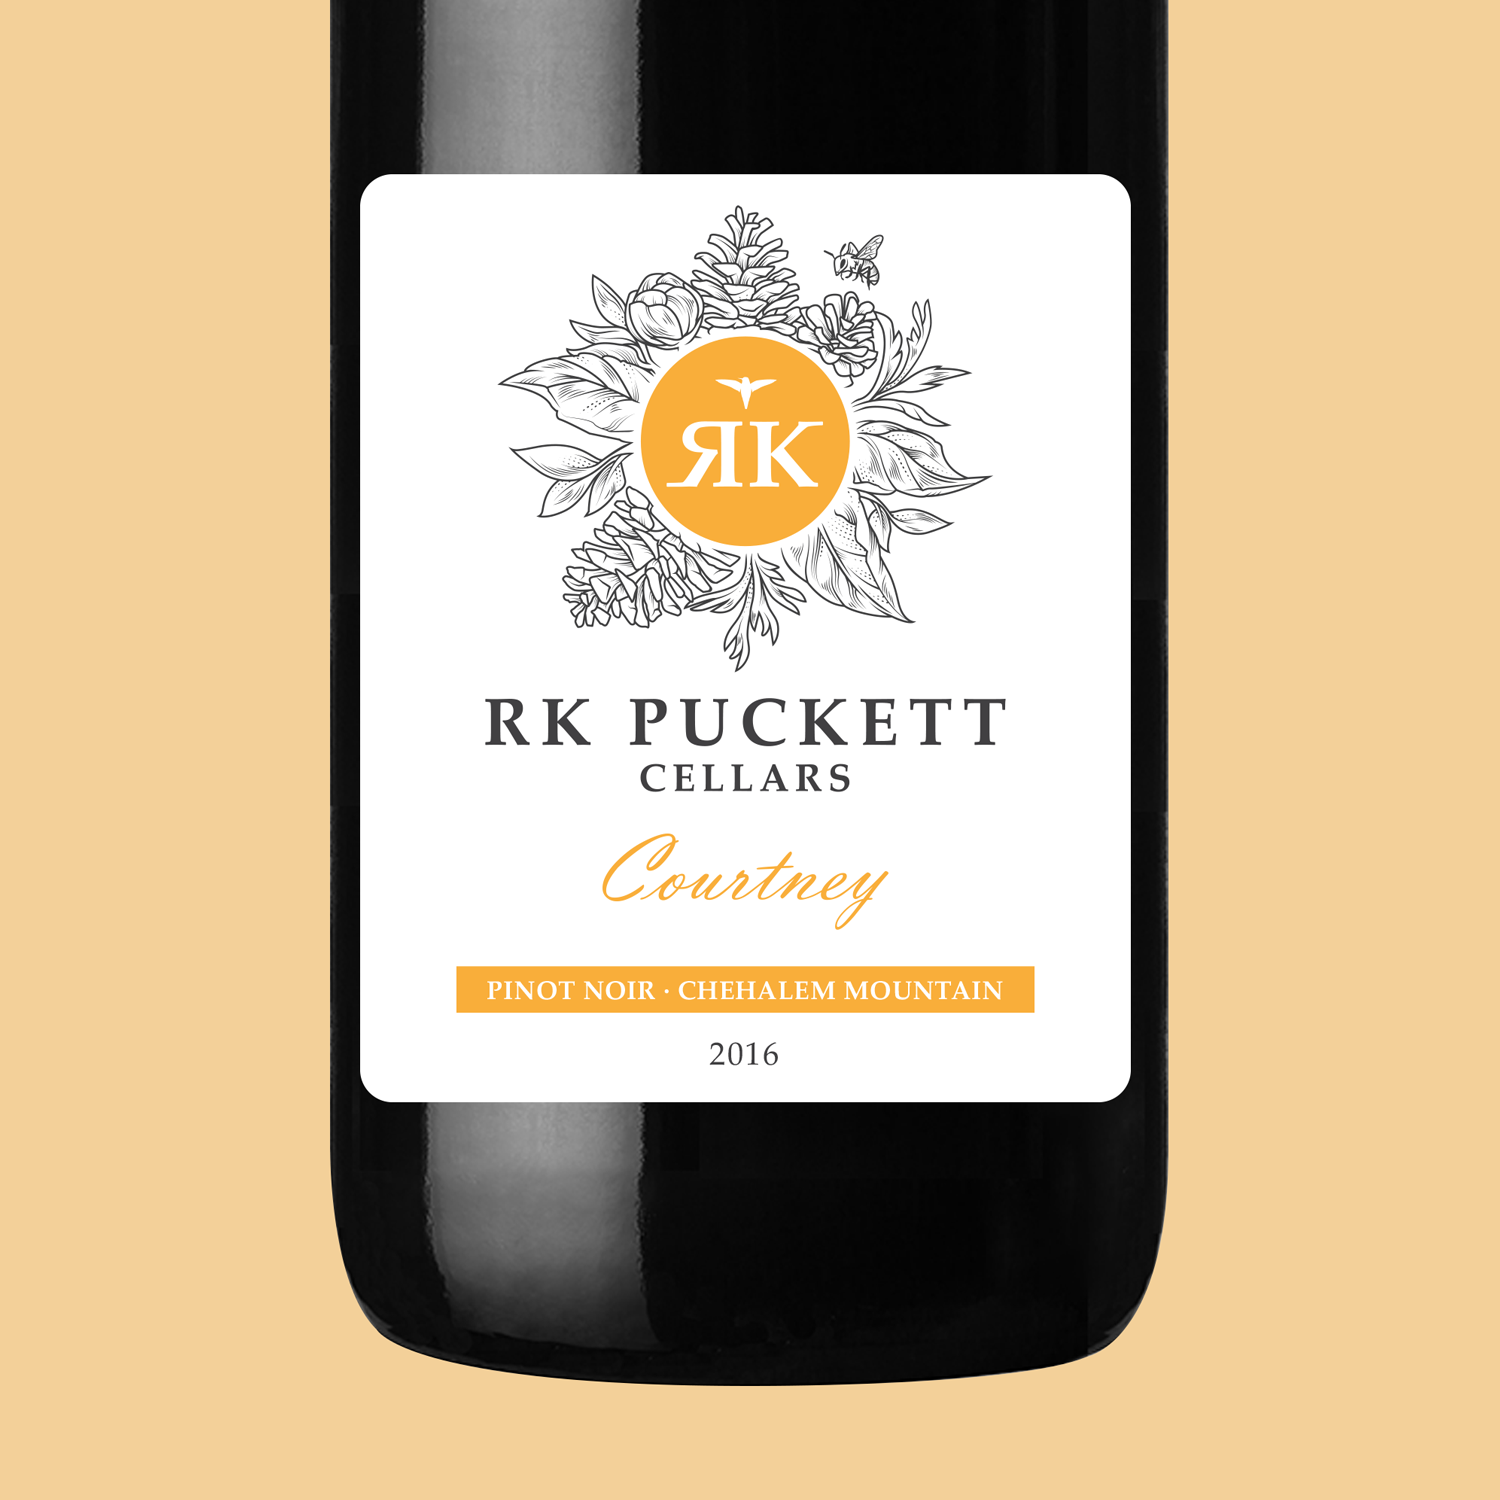 RK Puckett Cellars